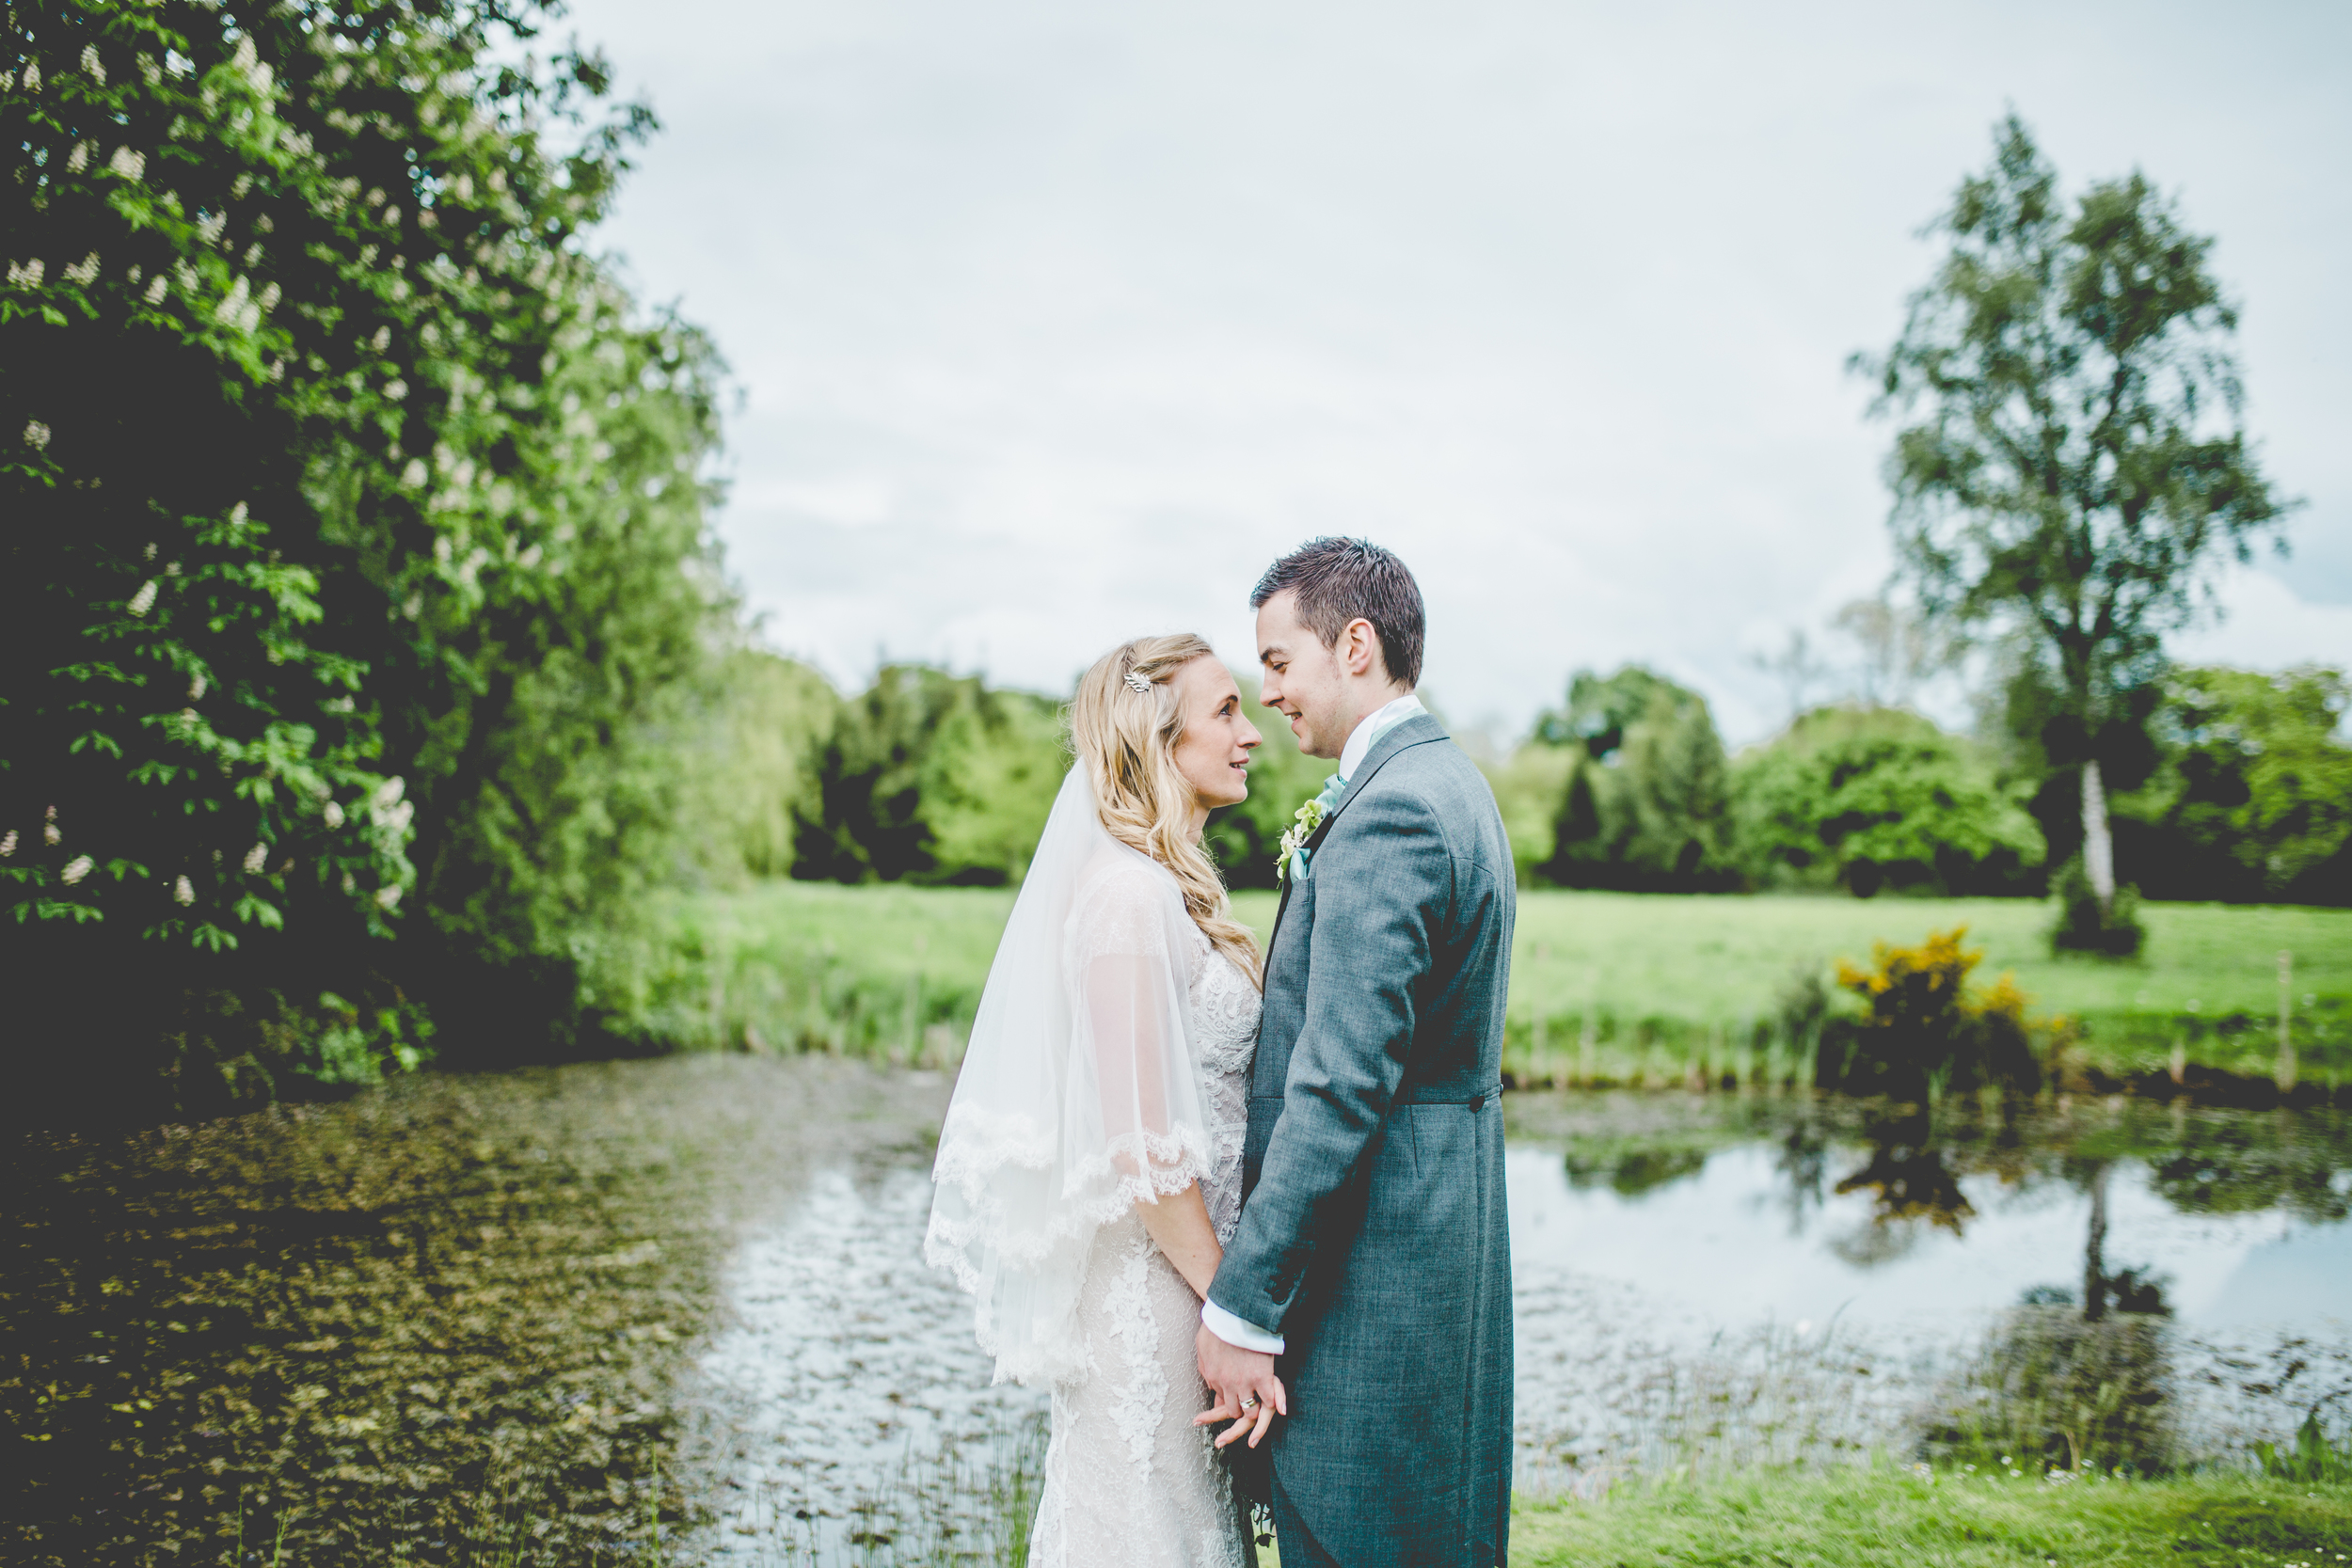 relaxed wedding photographer - The Oak Tree of Peover